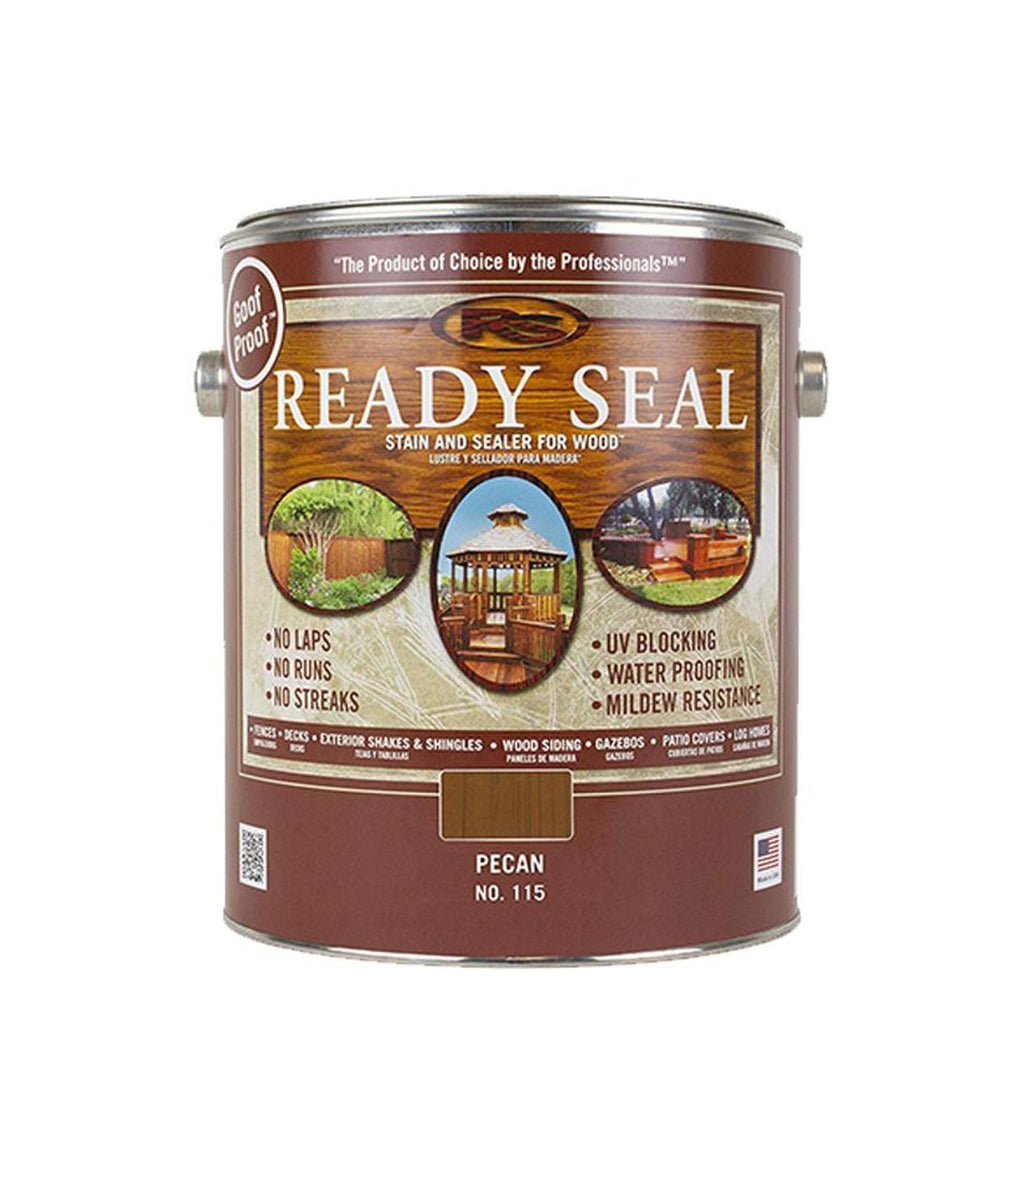 Ready Seal Exterior Wood Stain and Sealer, available at JC Licht in Chicago, IL.